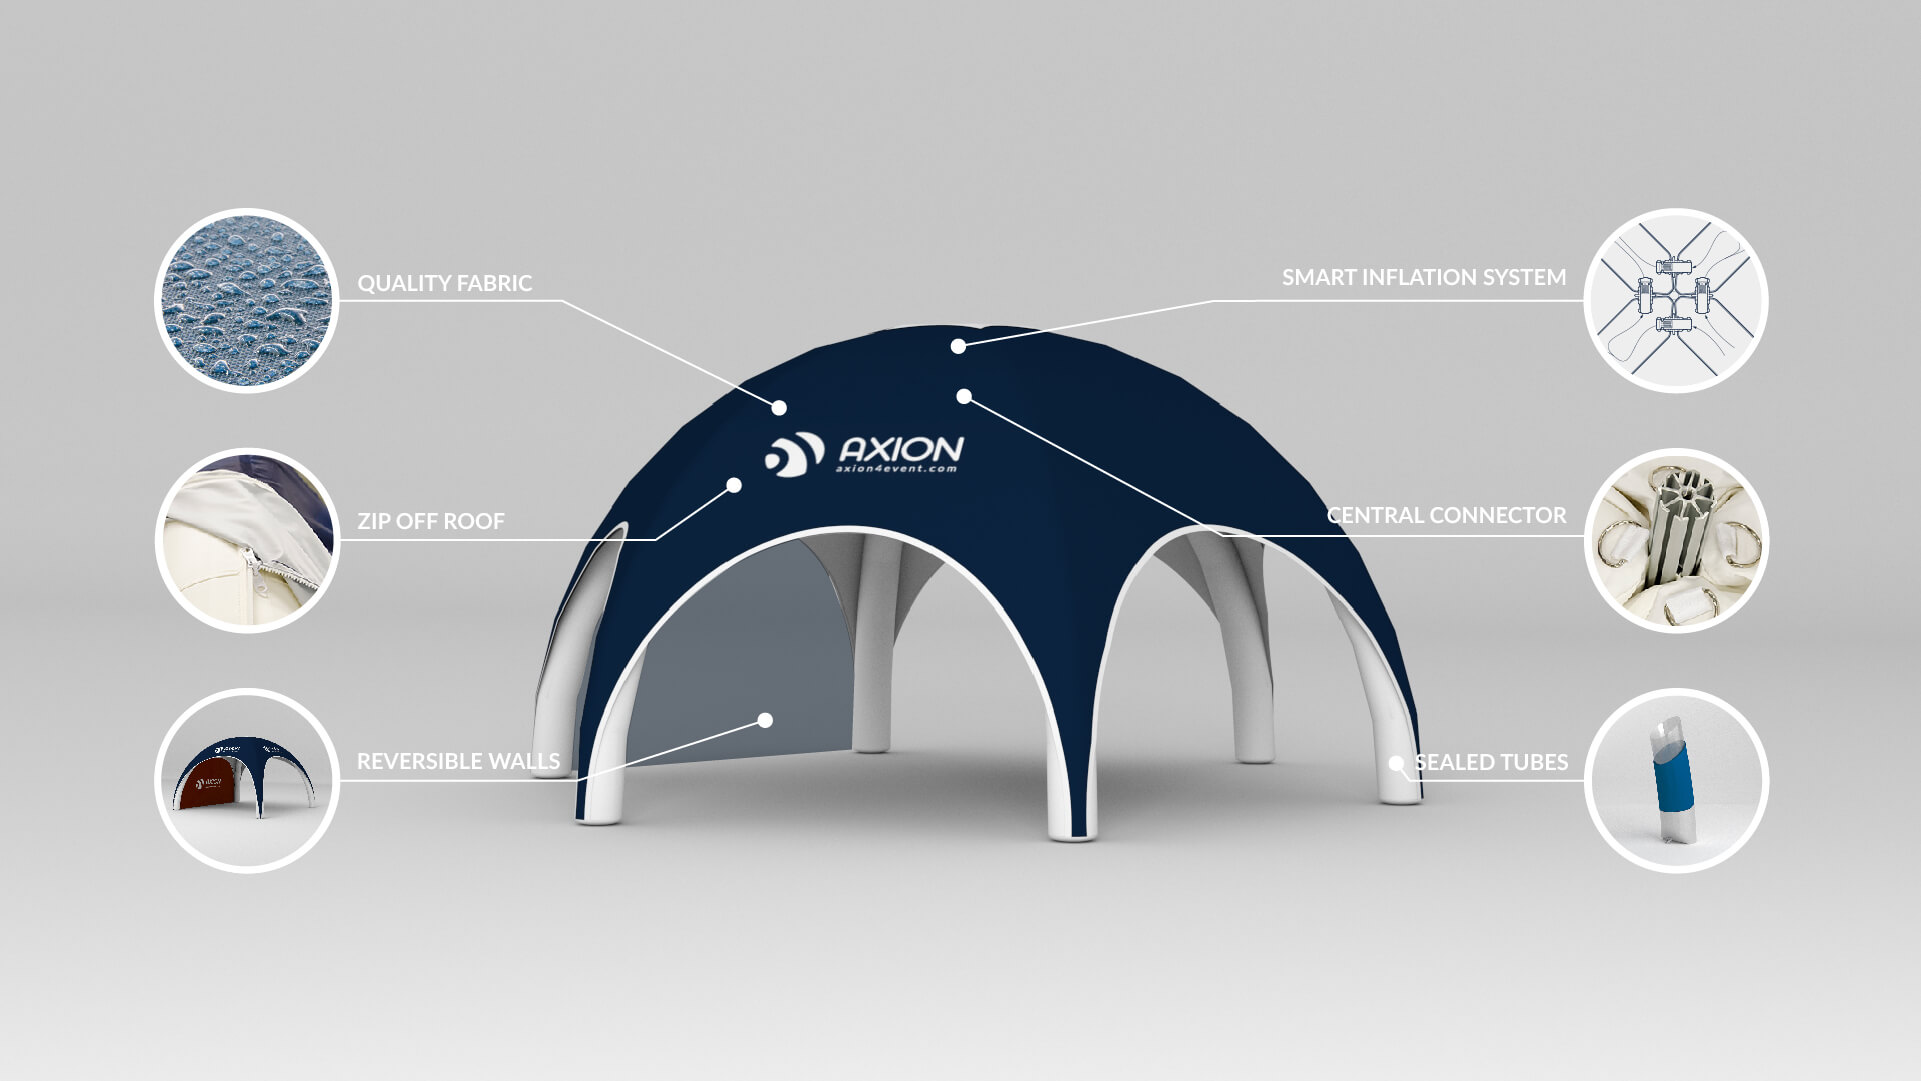 axion-spider-tent_main-feature